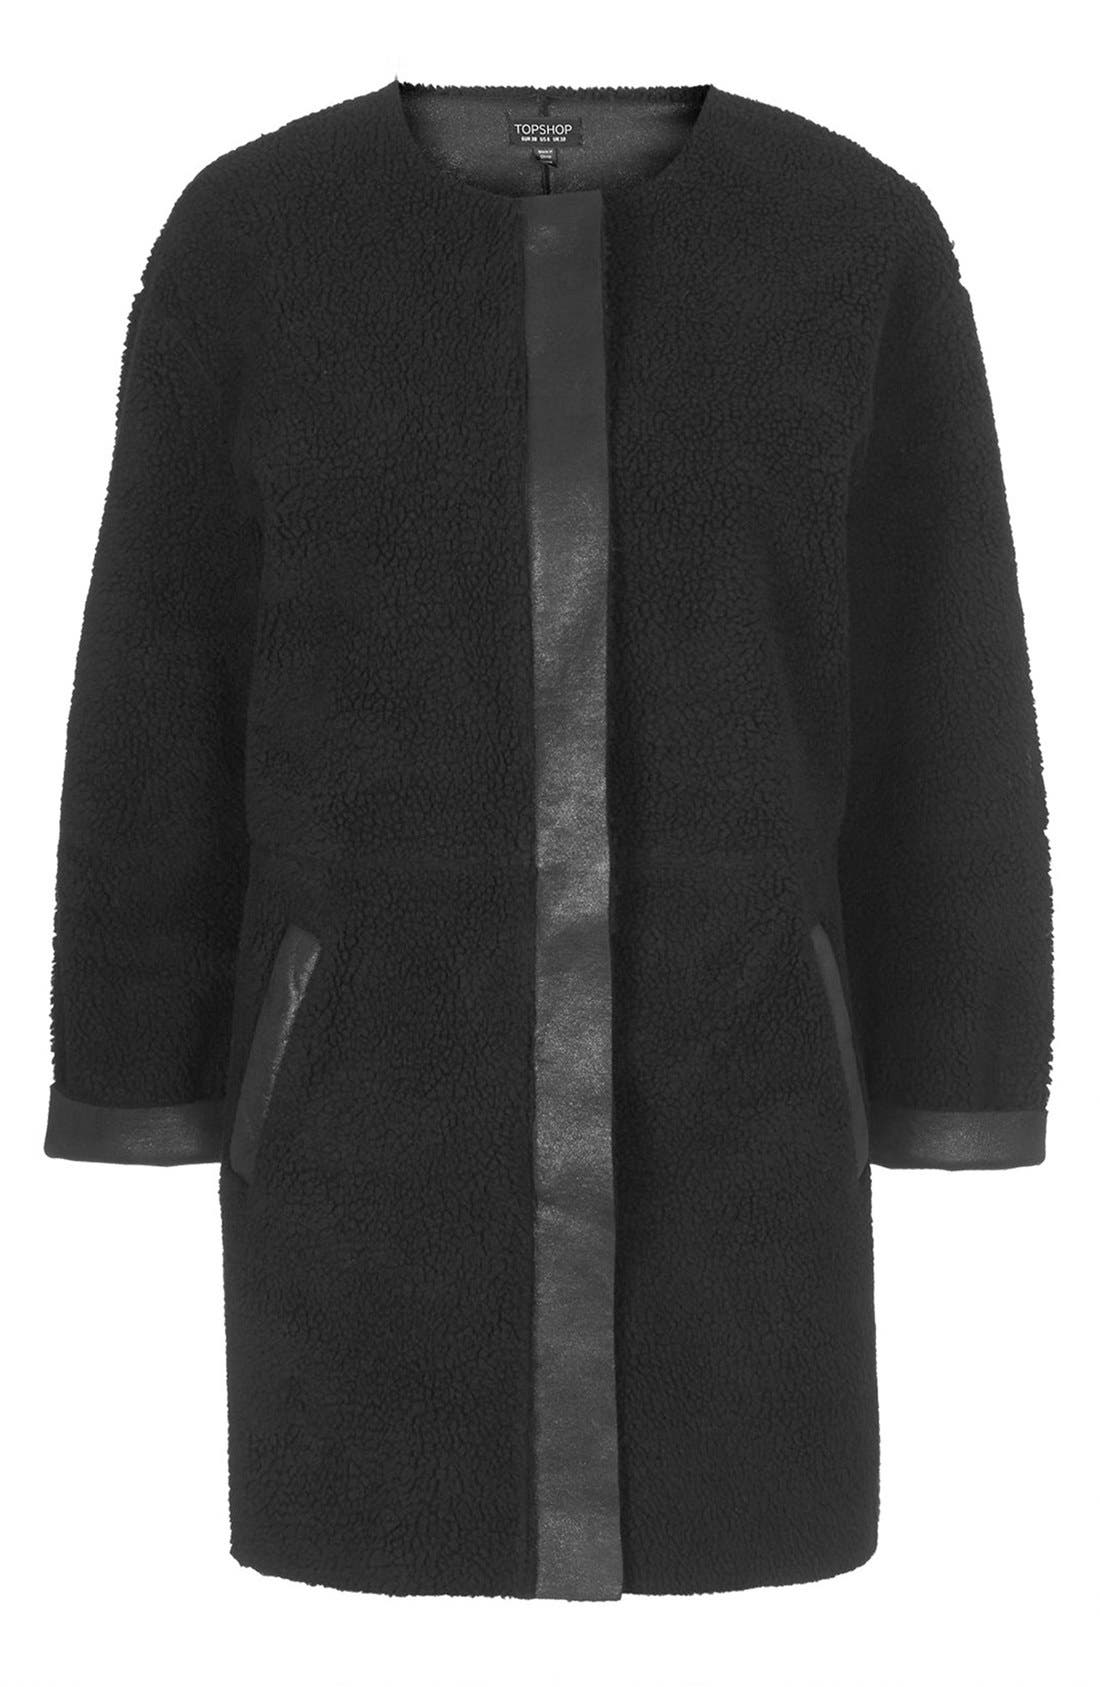 Alternate Image 3  - Topshop Faux Shearling Cocoon Jacket